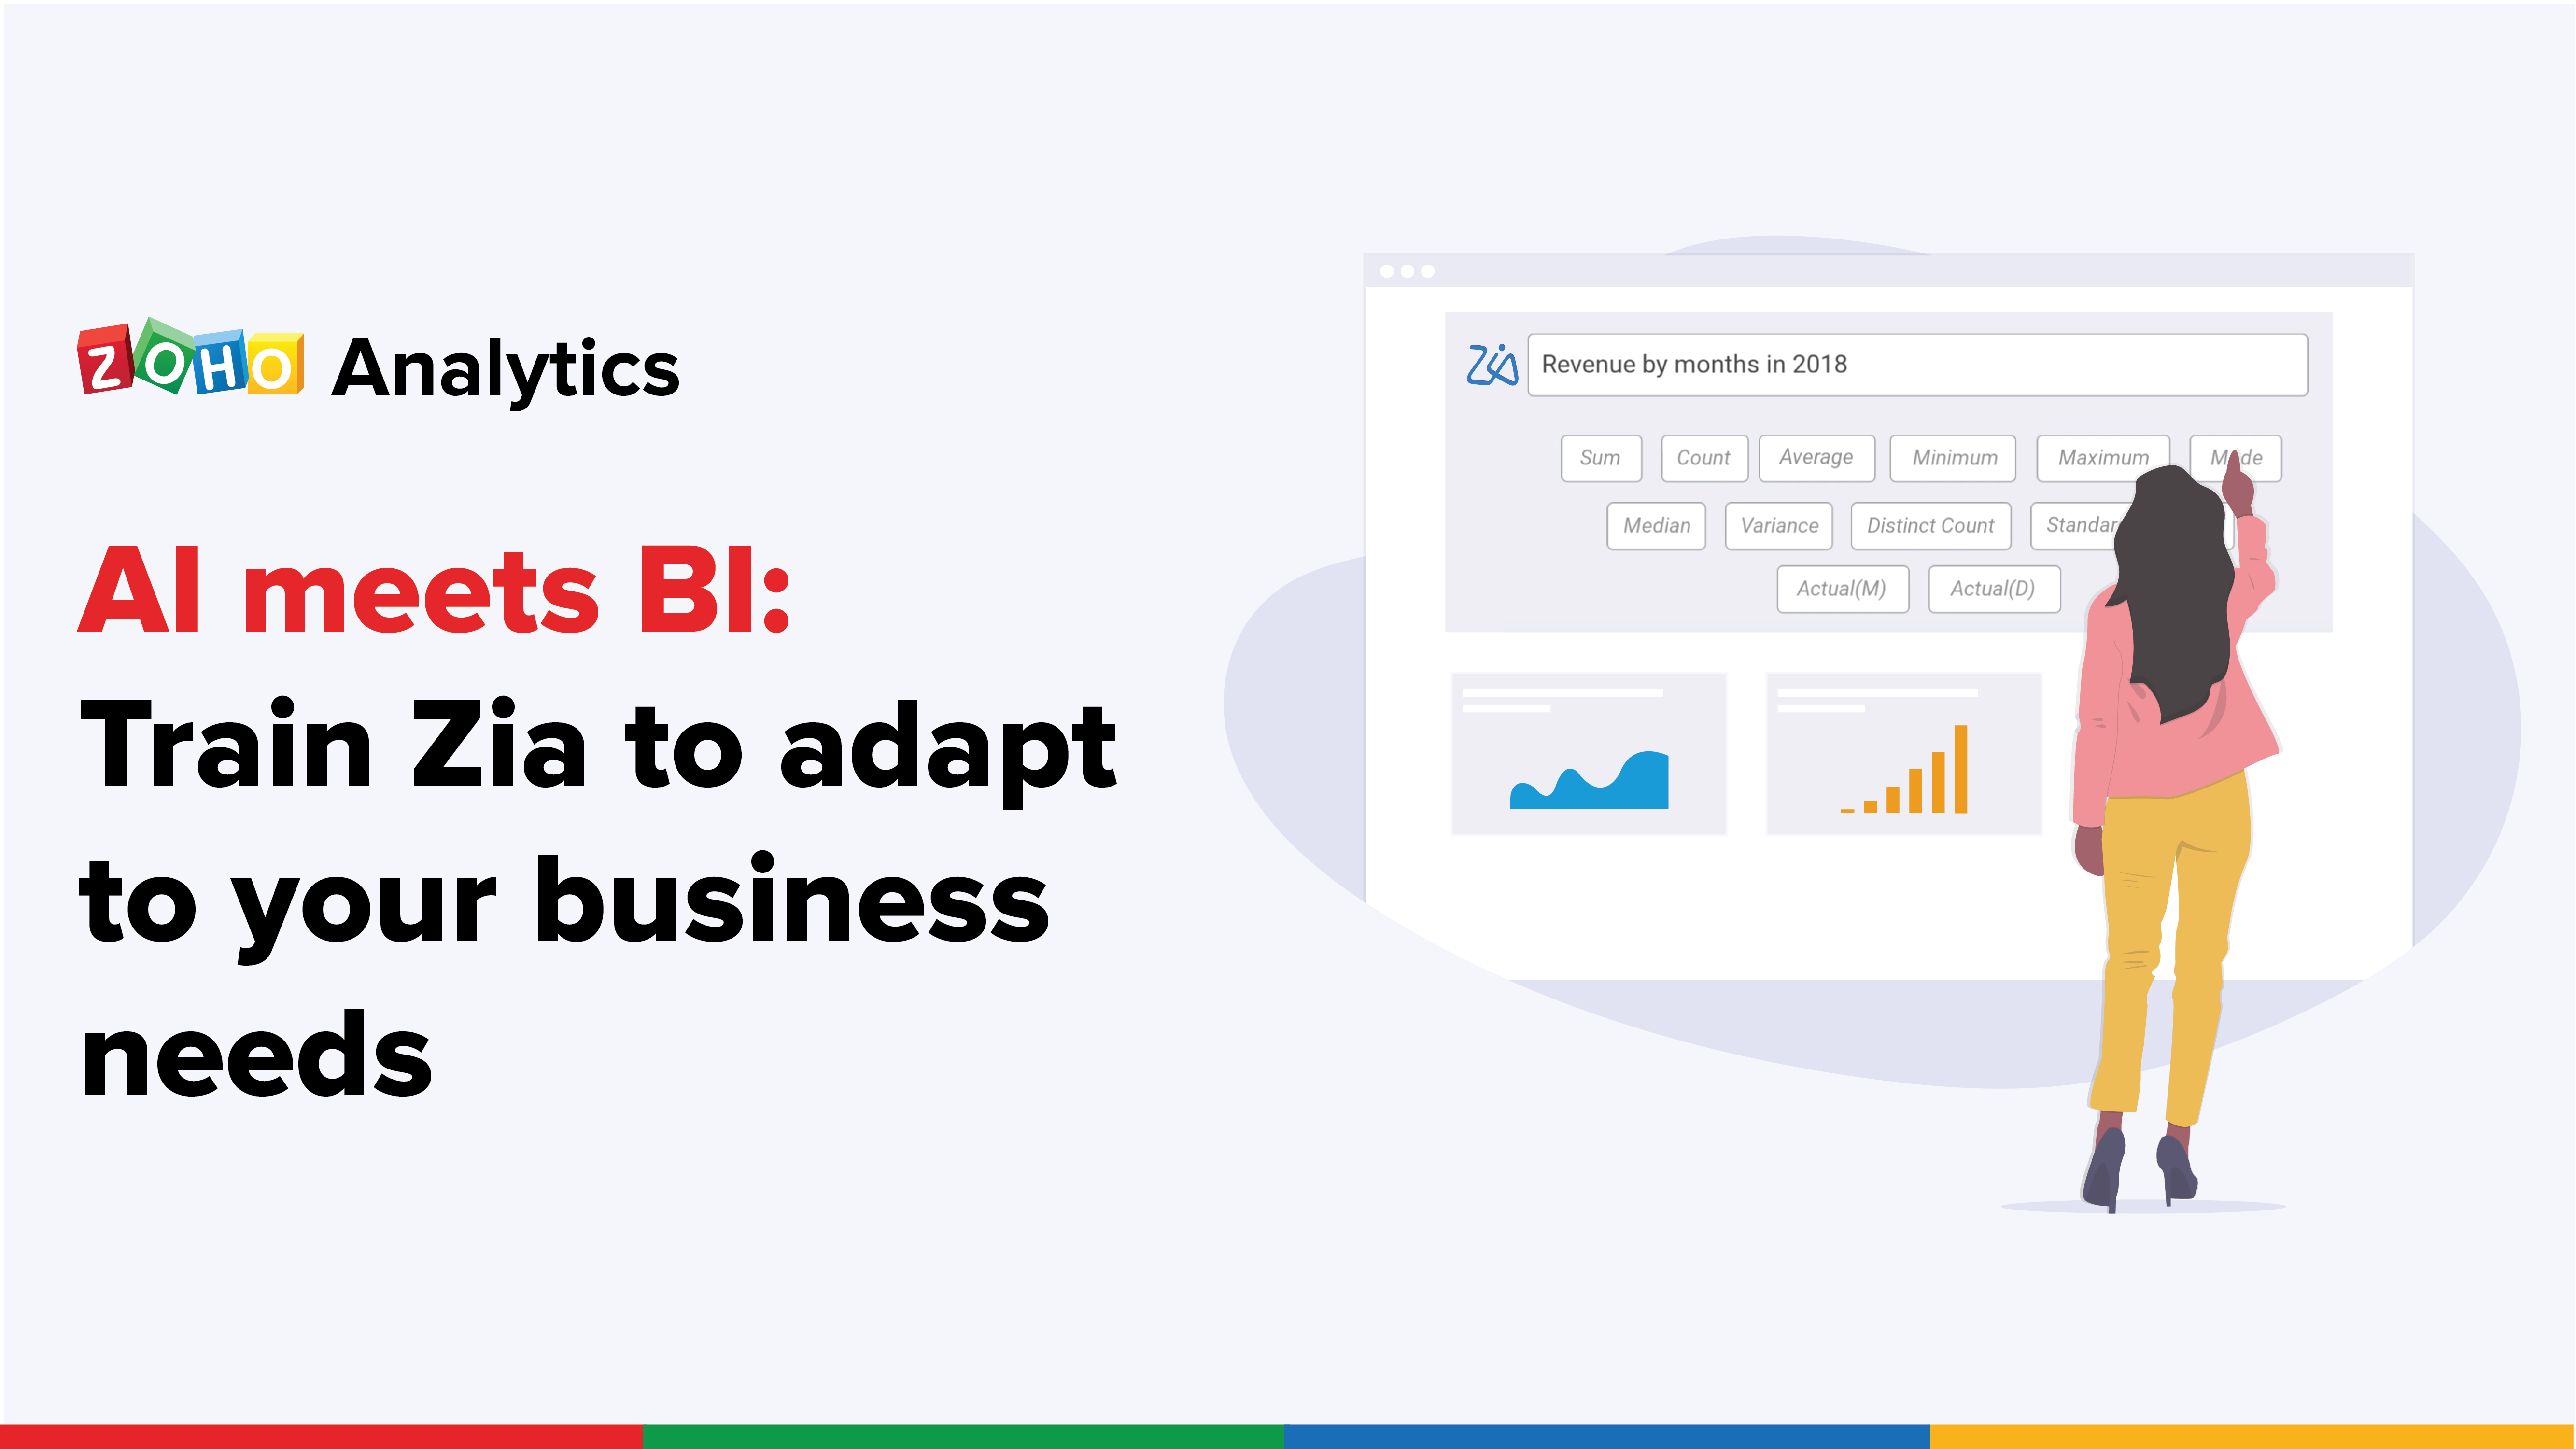 AI meets BI: Train Zia to adapt to your business needs